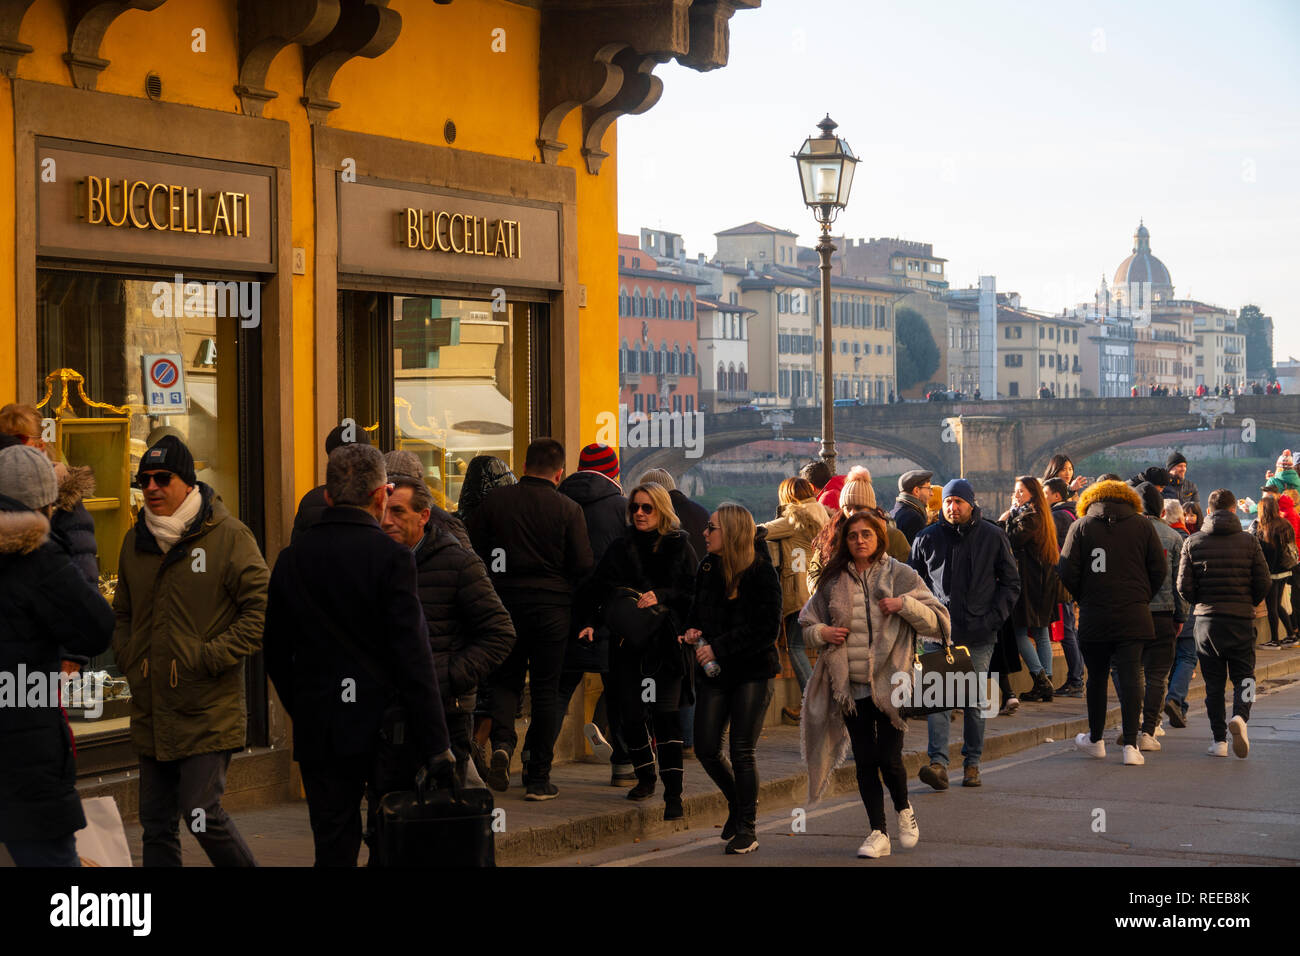 Italy Florence Firenze Lots of tourists walk along the Arno River near the Ponte Vecchio bridge and the Buccellati jewelry store in the winter - Stock Image